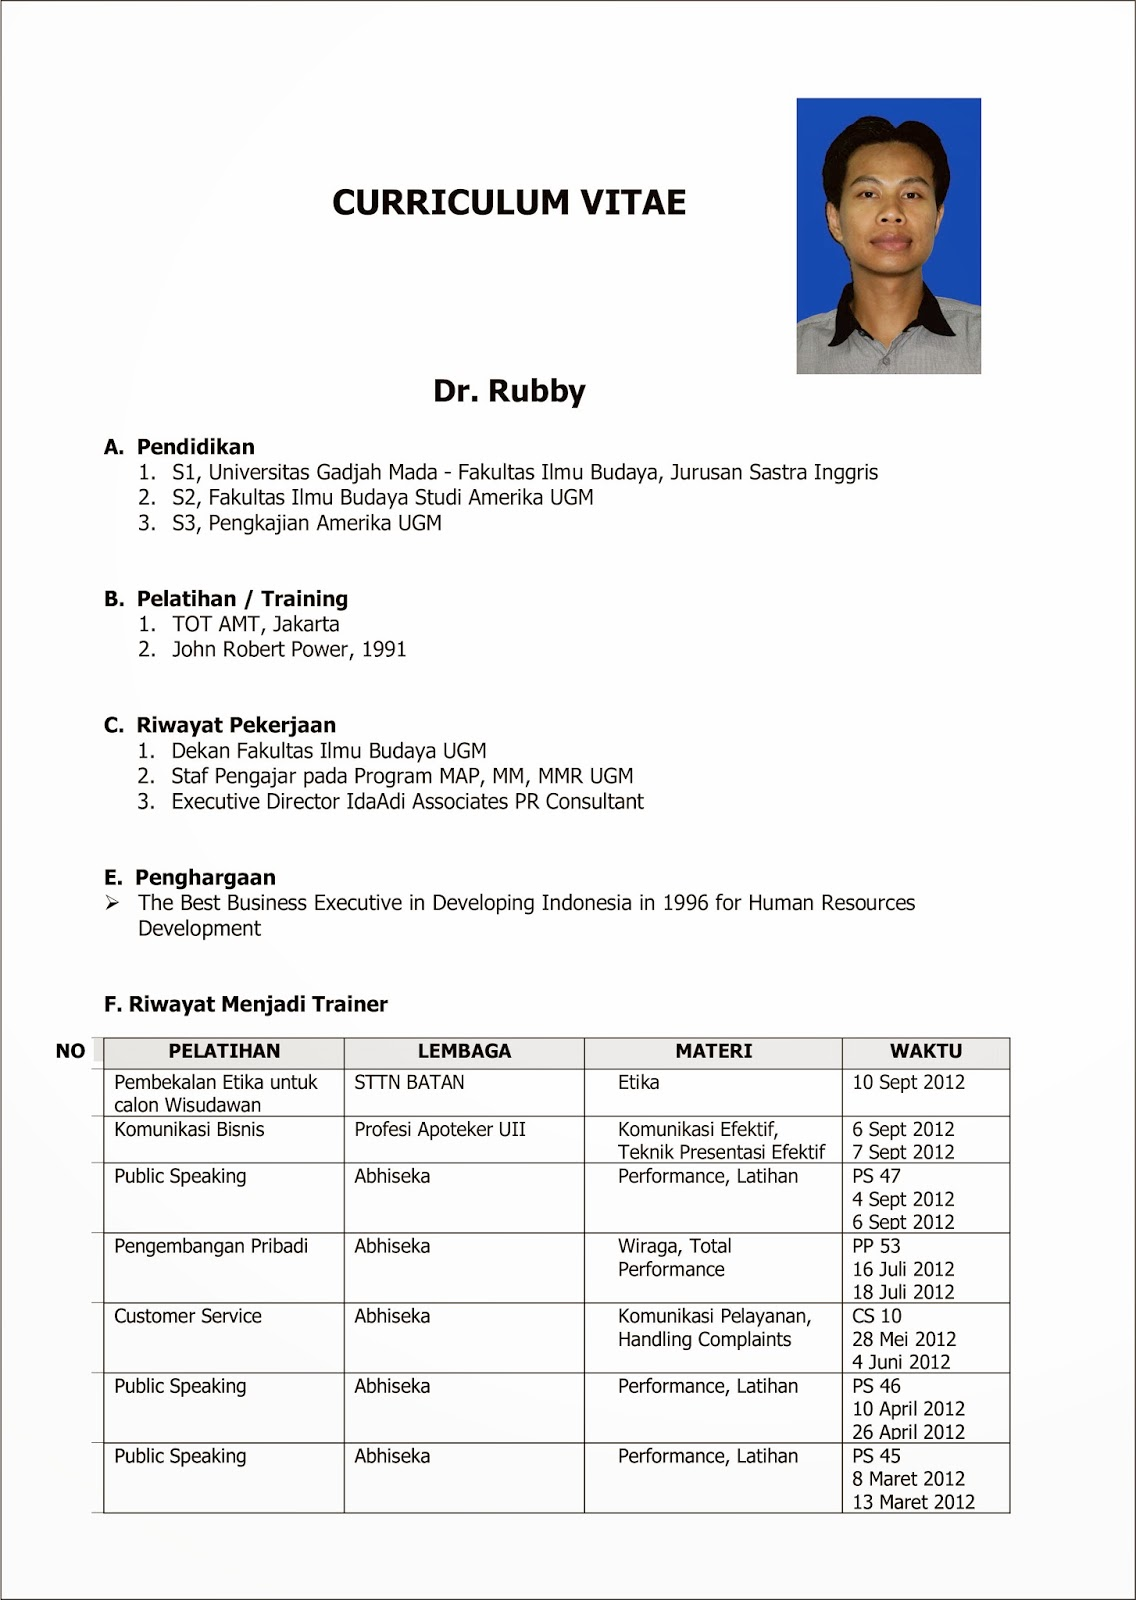 Curriculum Vitae Sample Bahasa Indonesia Azwg Tk